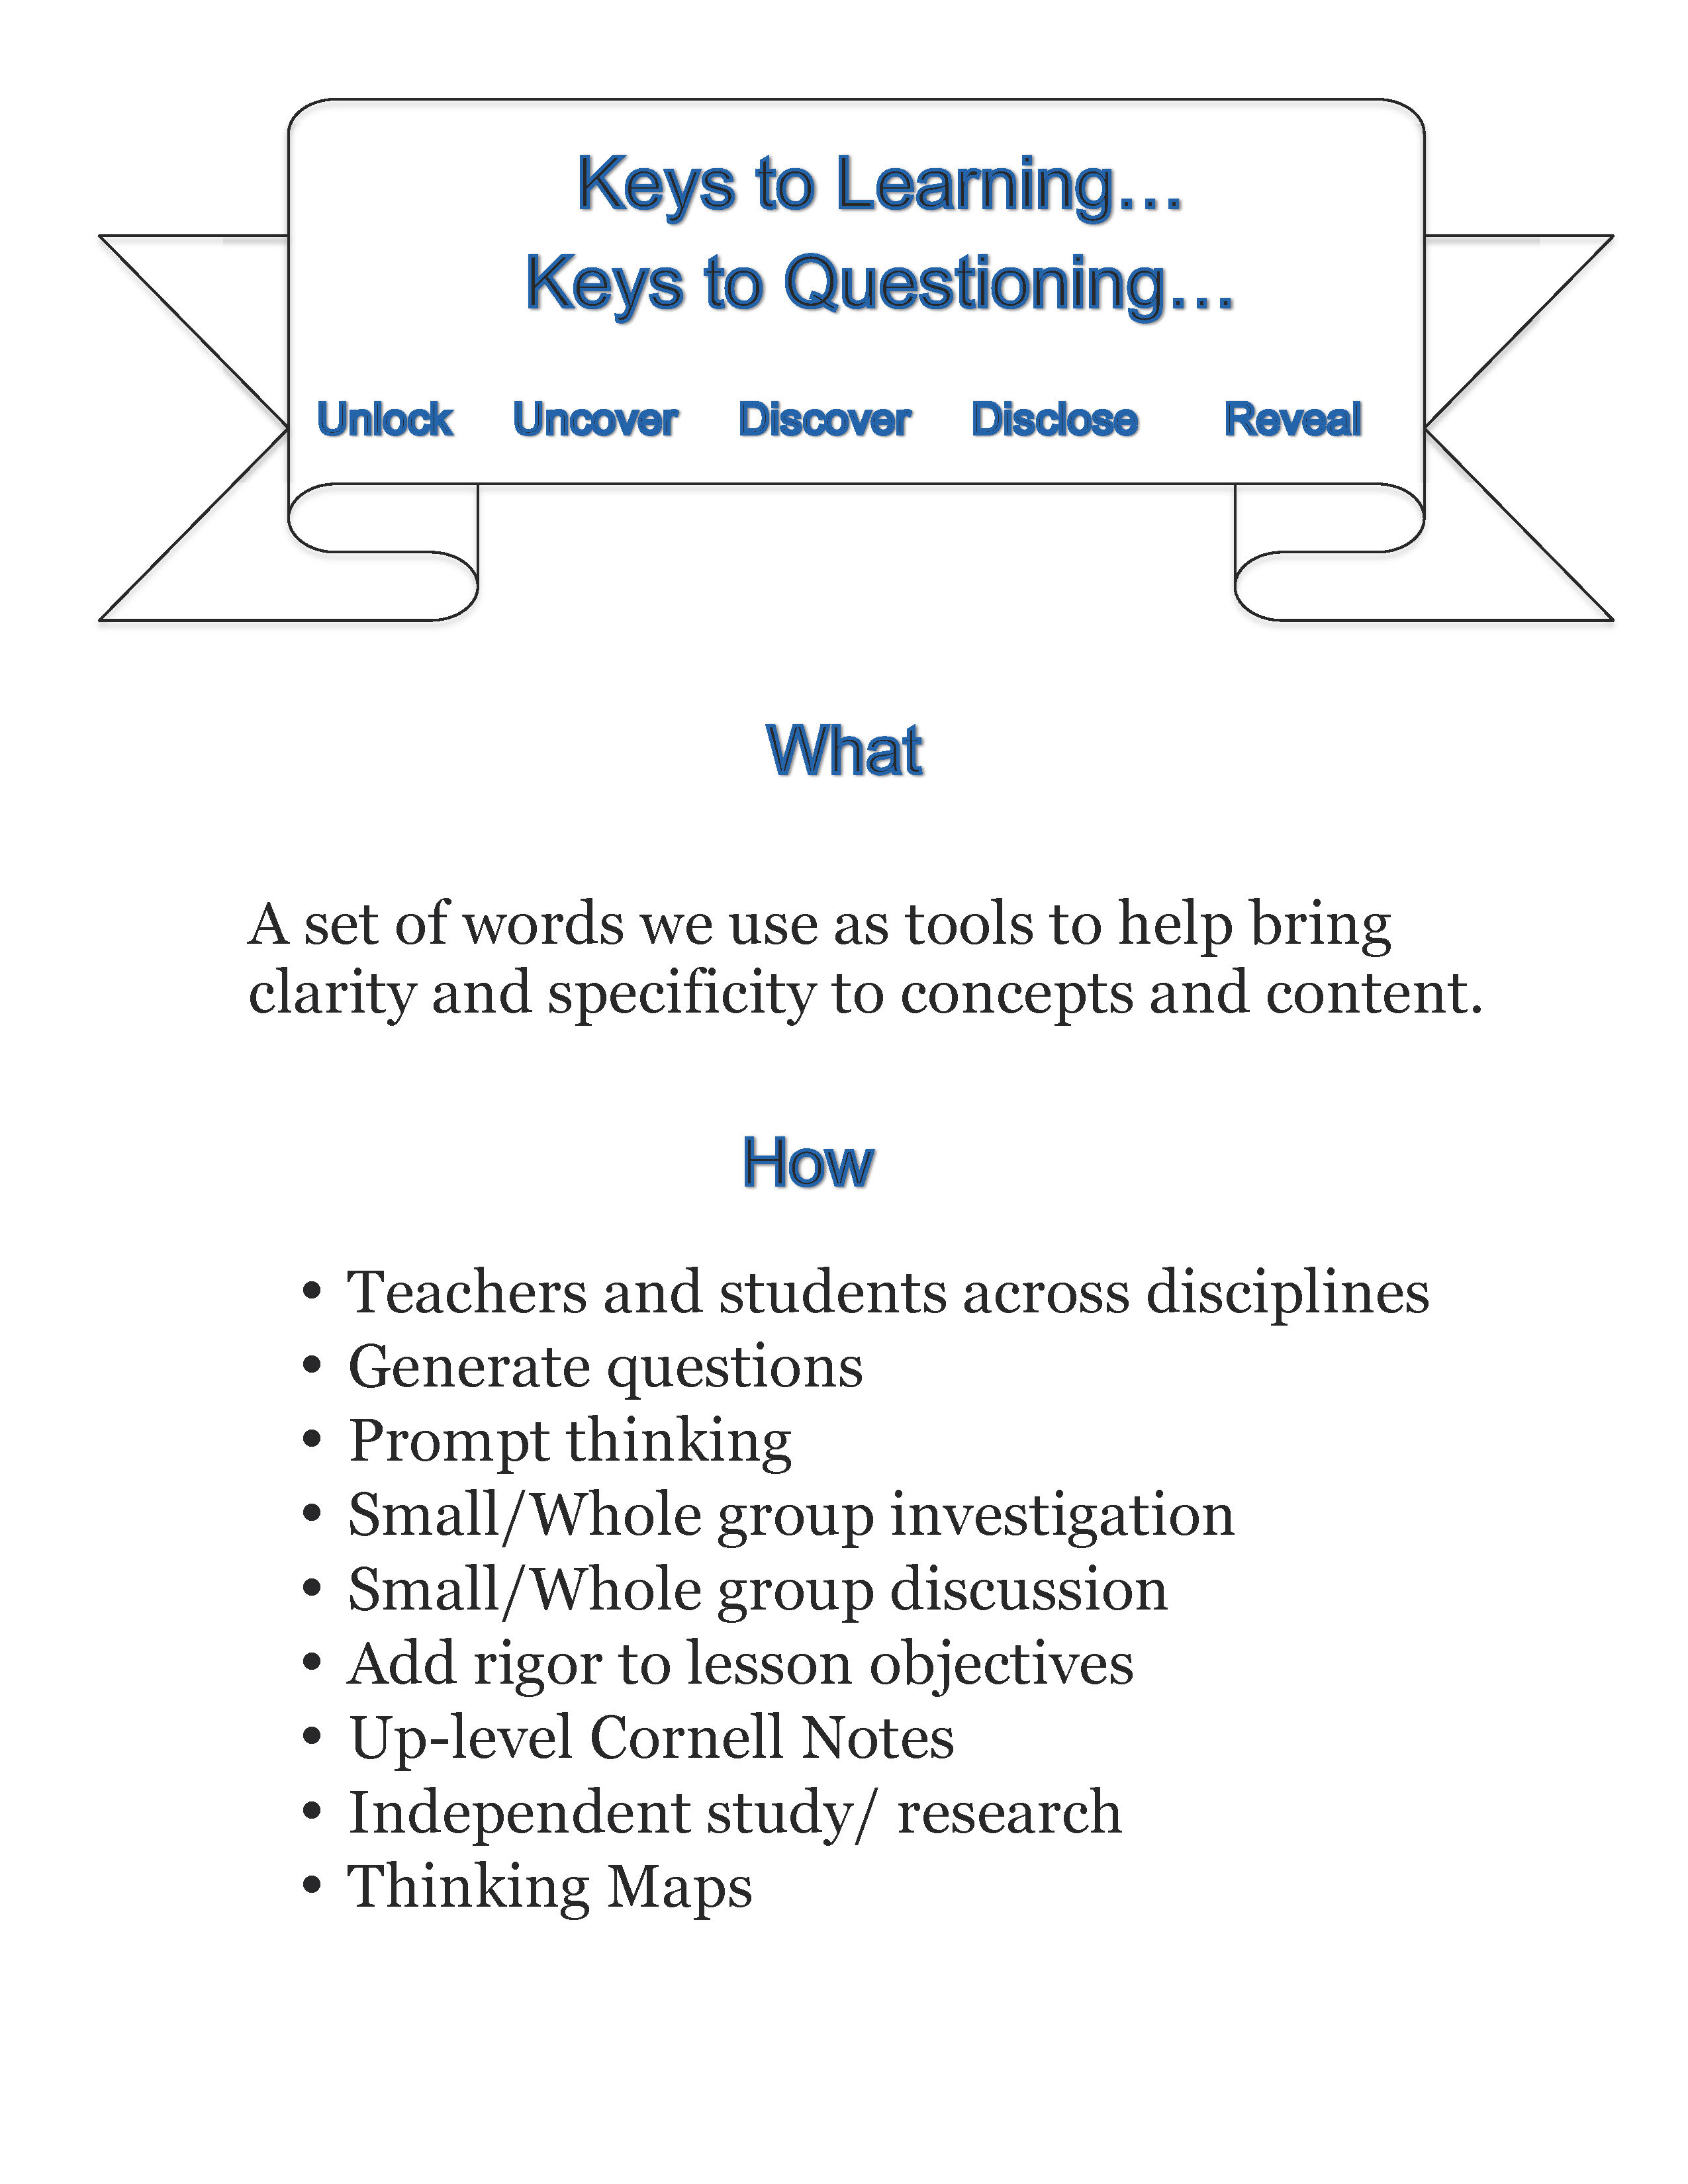 Envision Gifted. Keys-A set of words we use as tools to help bring clarity and specificity to concepts and content